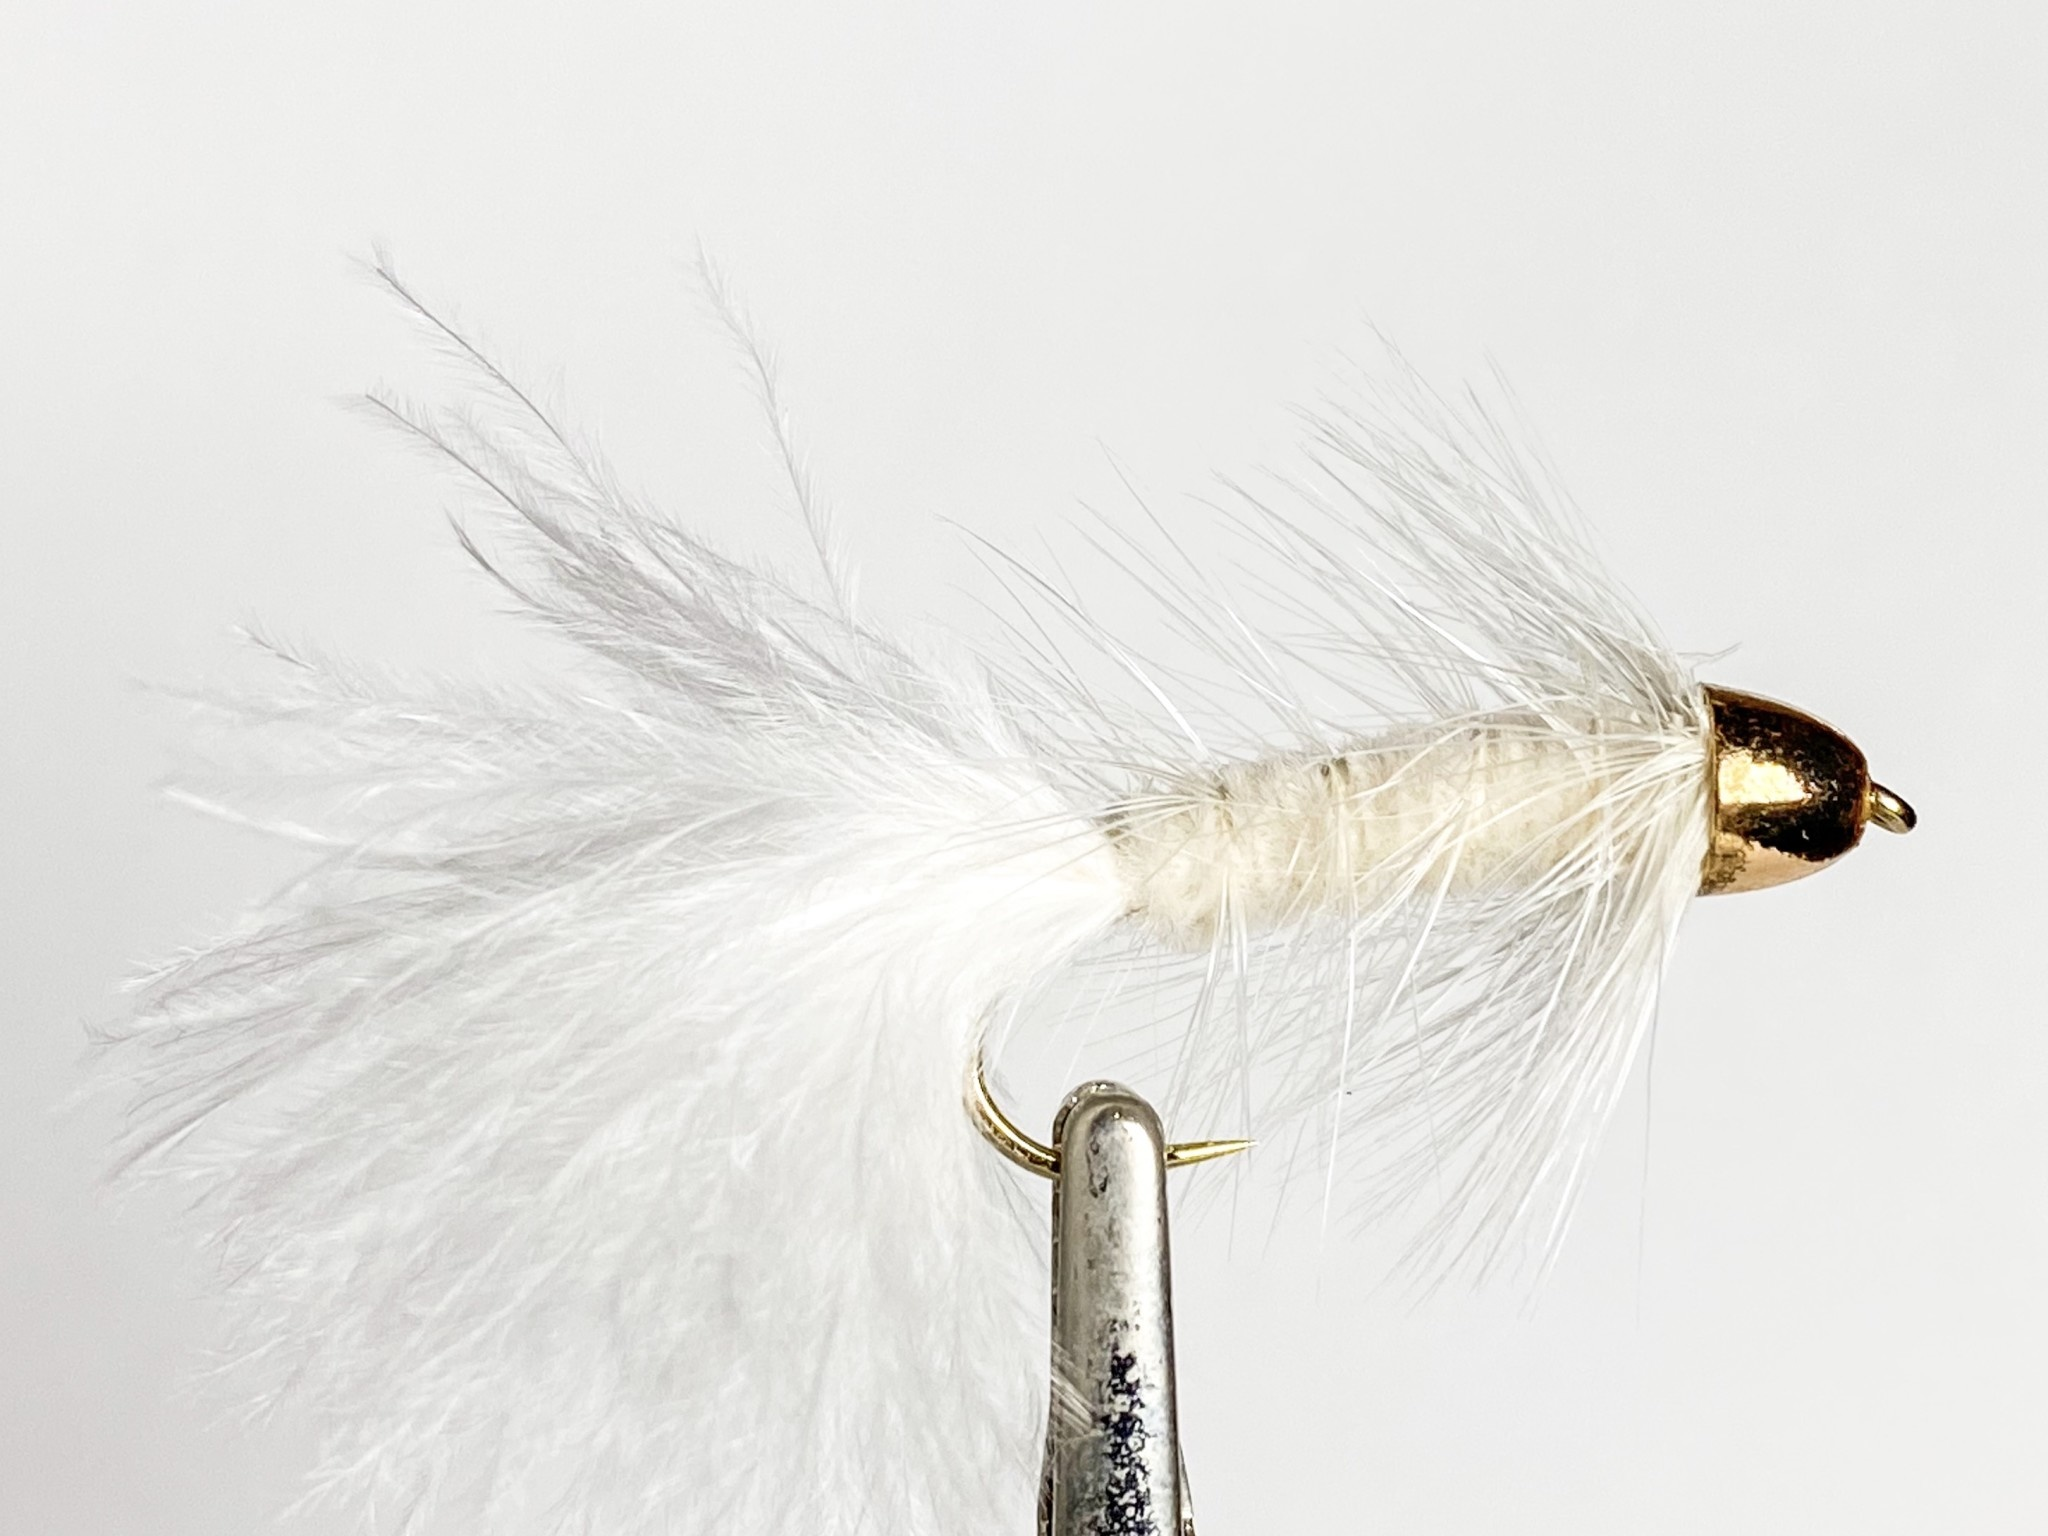 Gig Harbor Fly Shop Conehead Wooly Bugger size 4